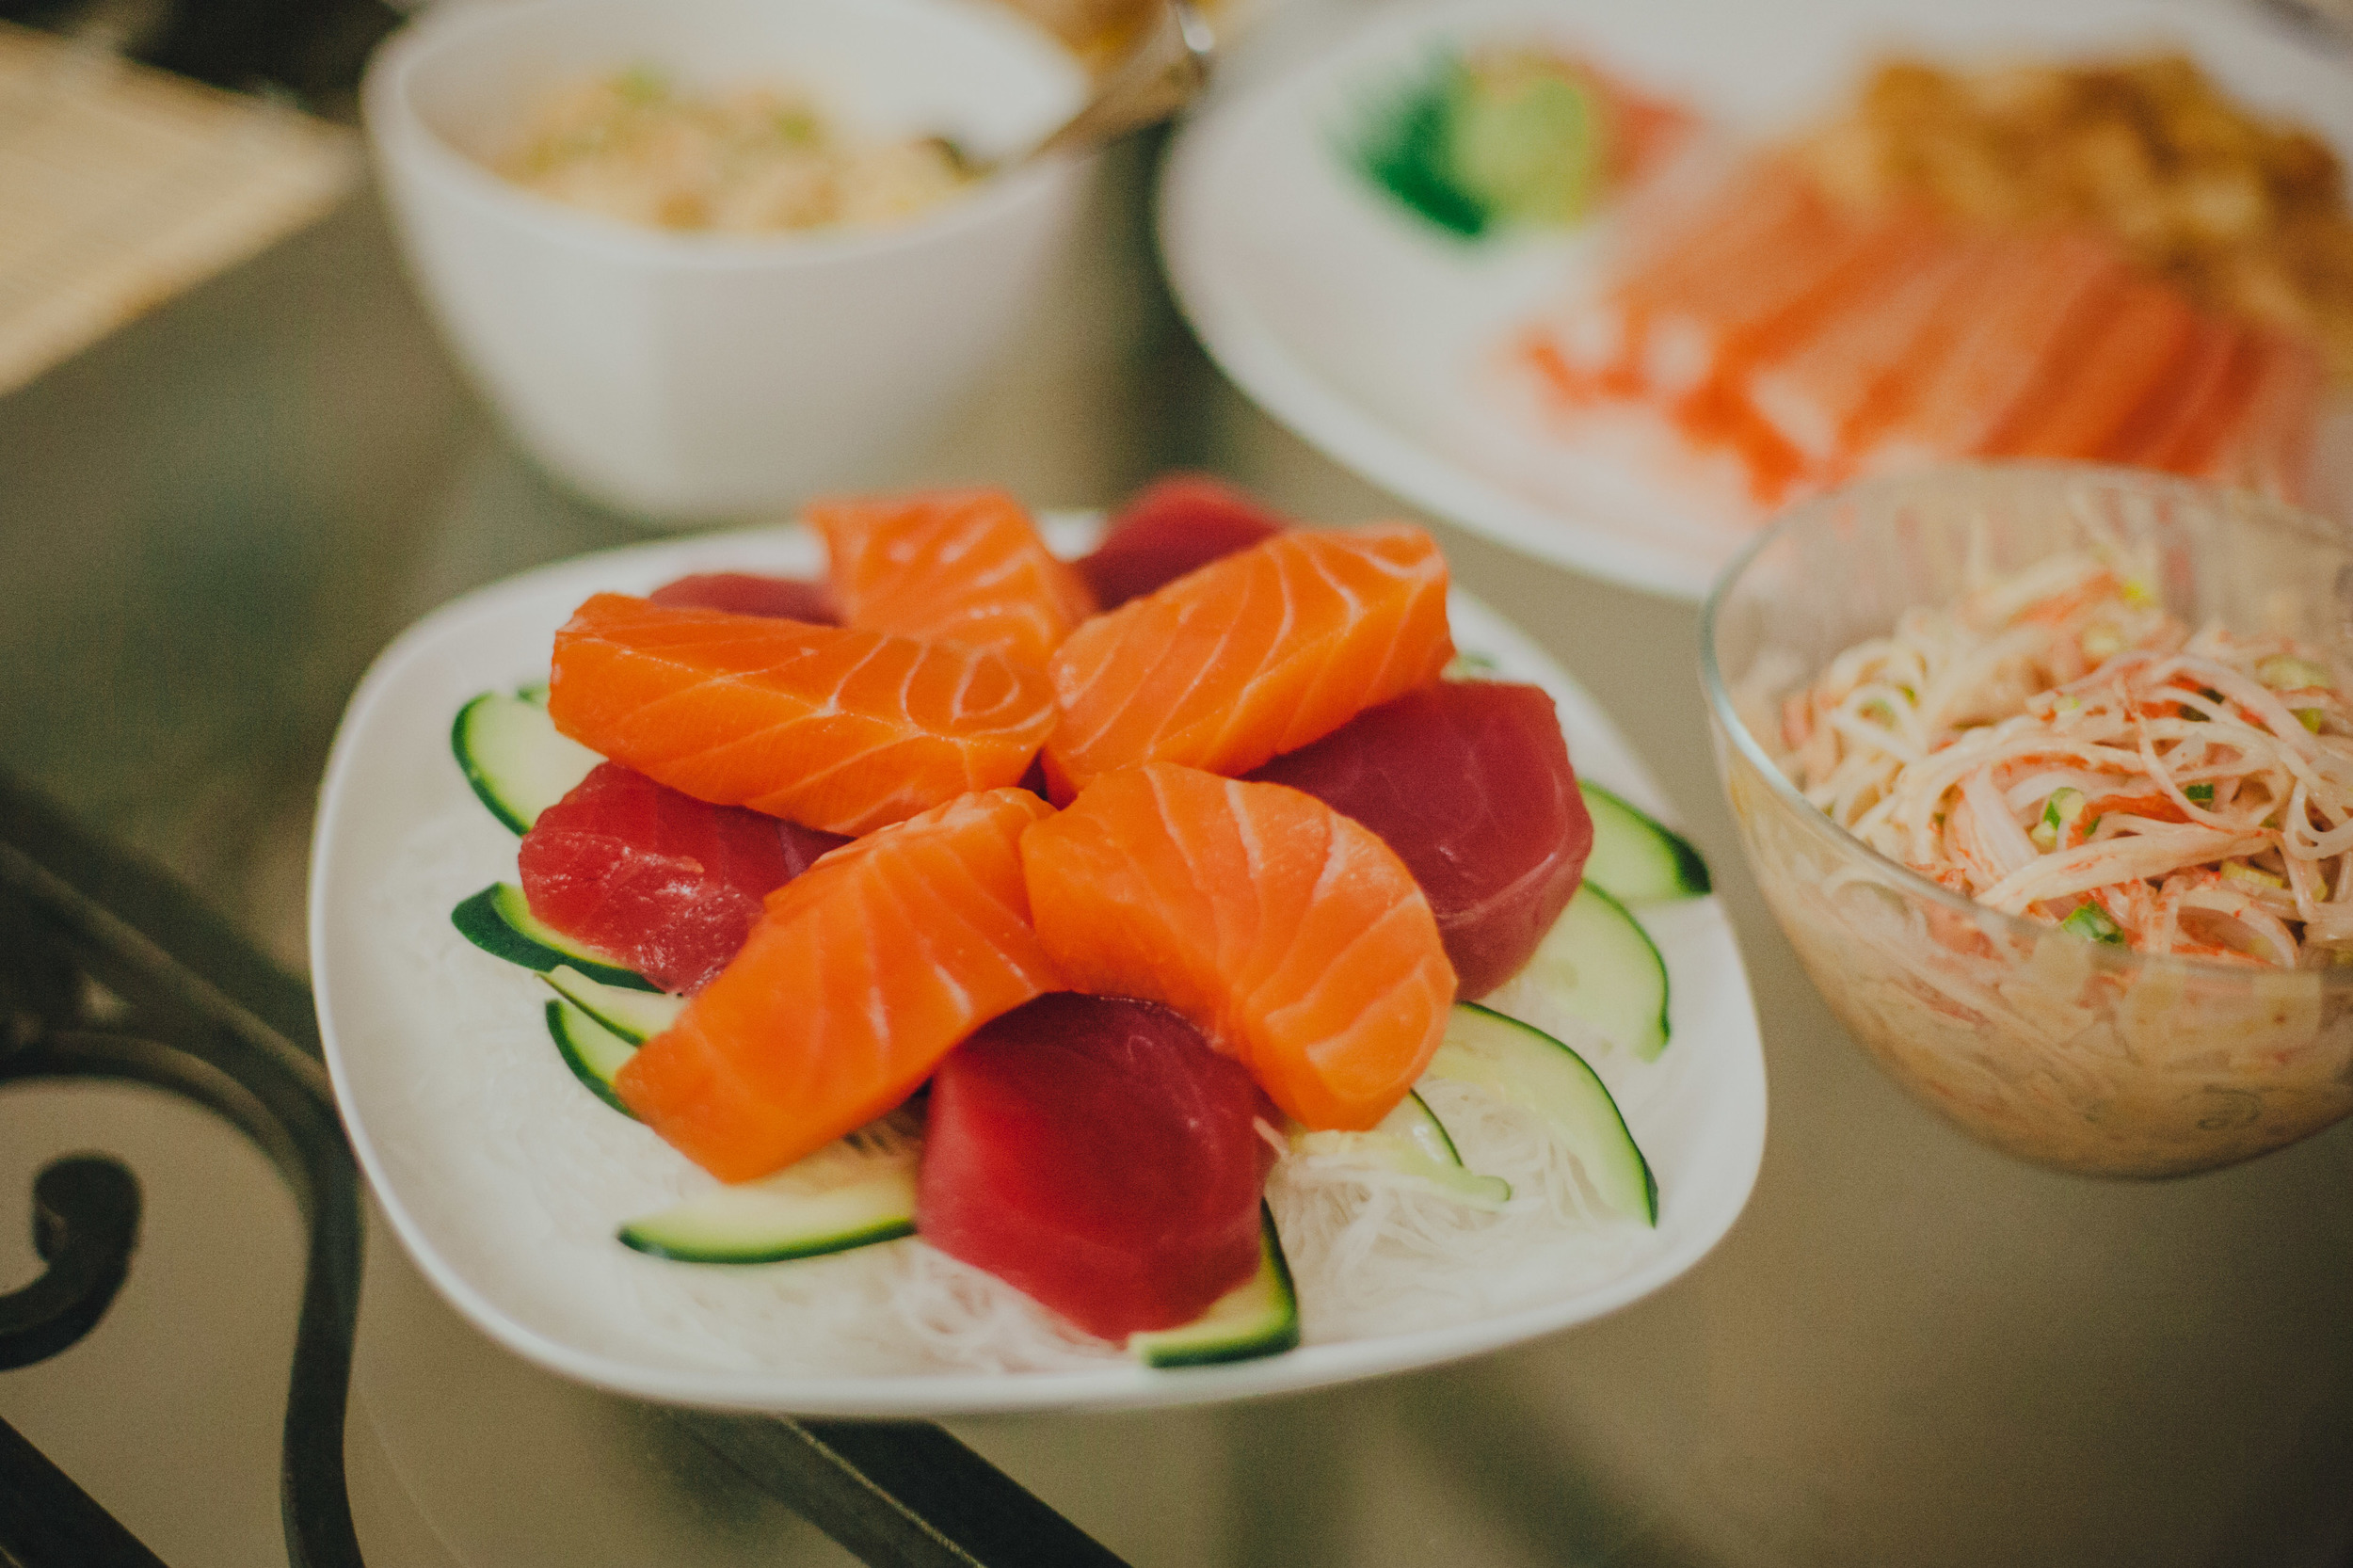 Sliced salmon & tuna sashimi, served over a bed of daikon & sliced cucumbers.